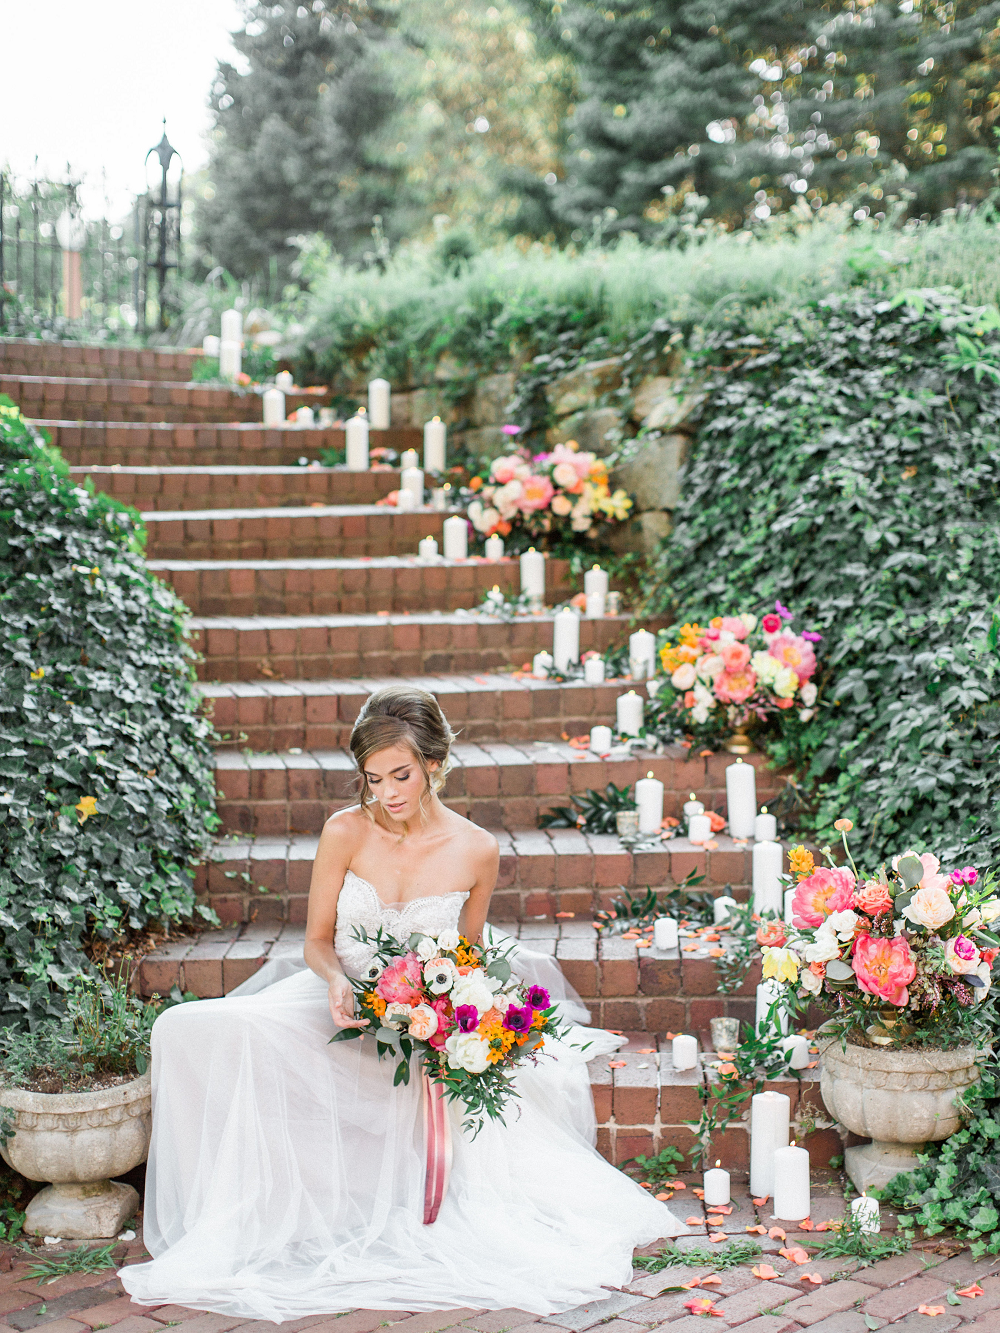 Whimsical Summer Wedding Styled Shoot at Henderson Castle Featured in WeddingDay Magazine Bride on staircase with candles